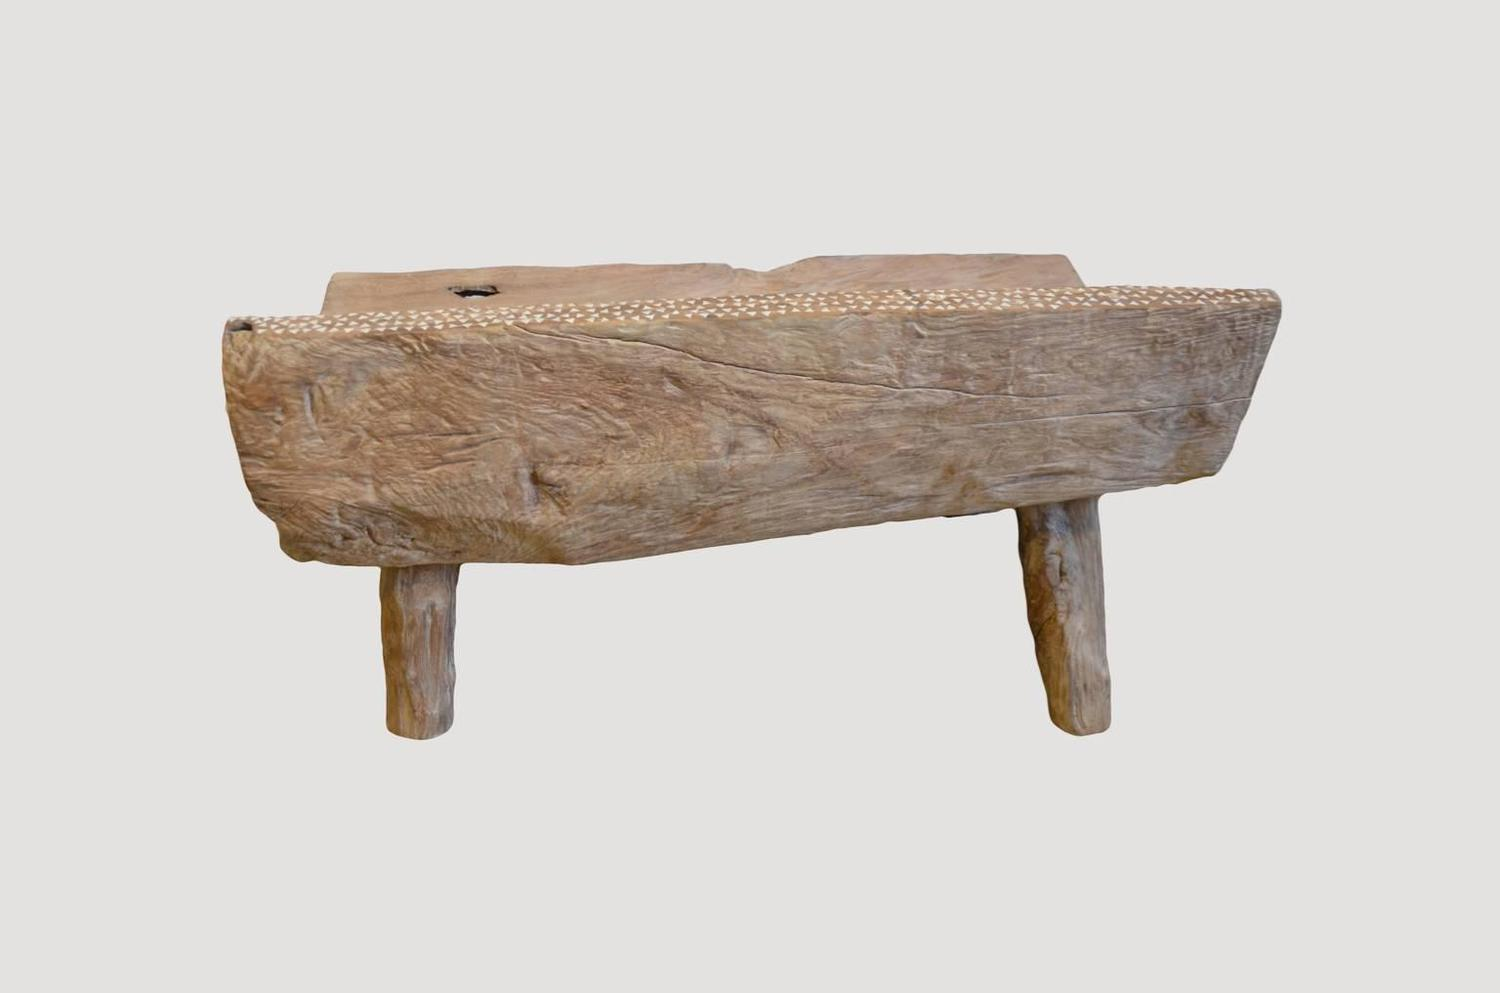 Antique Primitive Shell Inlay Bench At 1stdibs